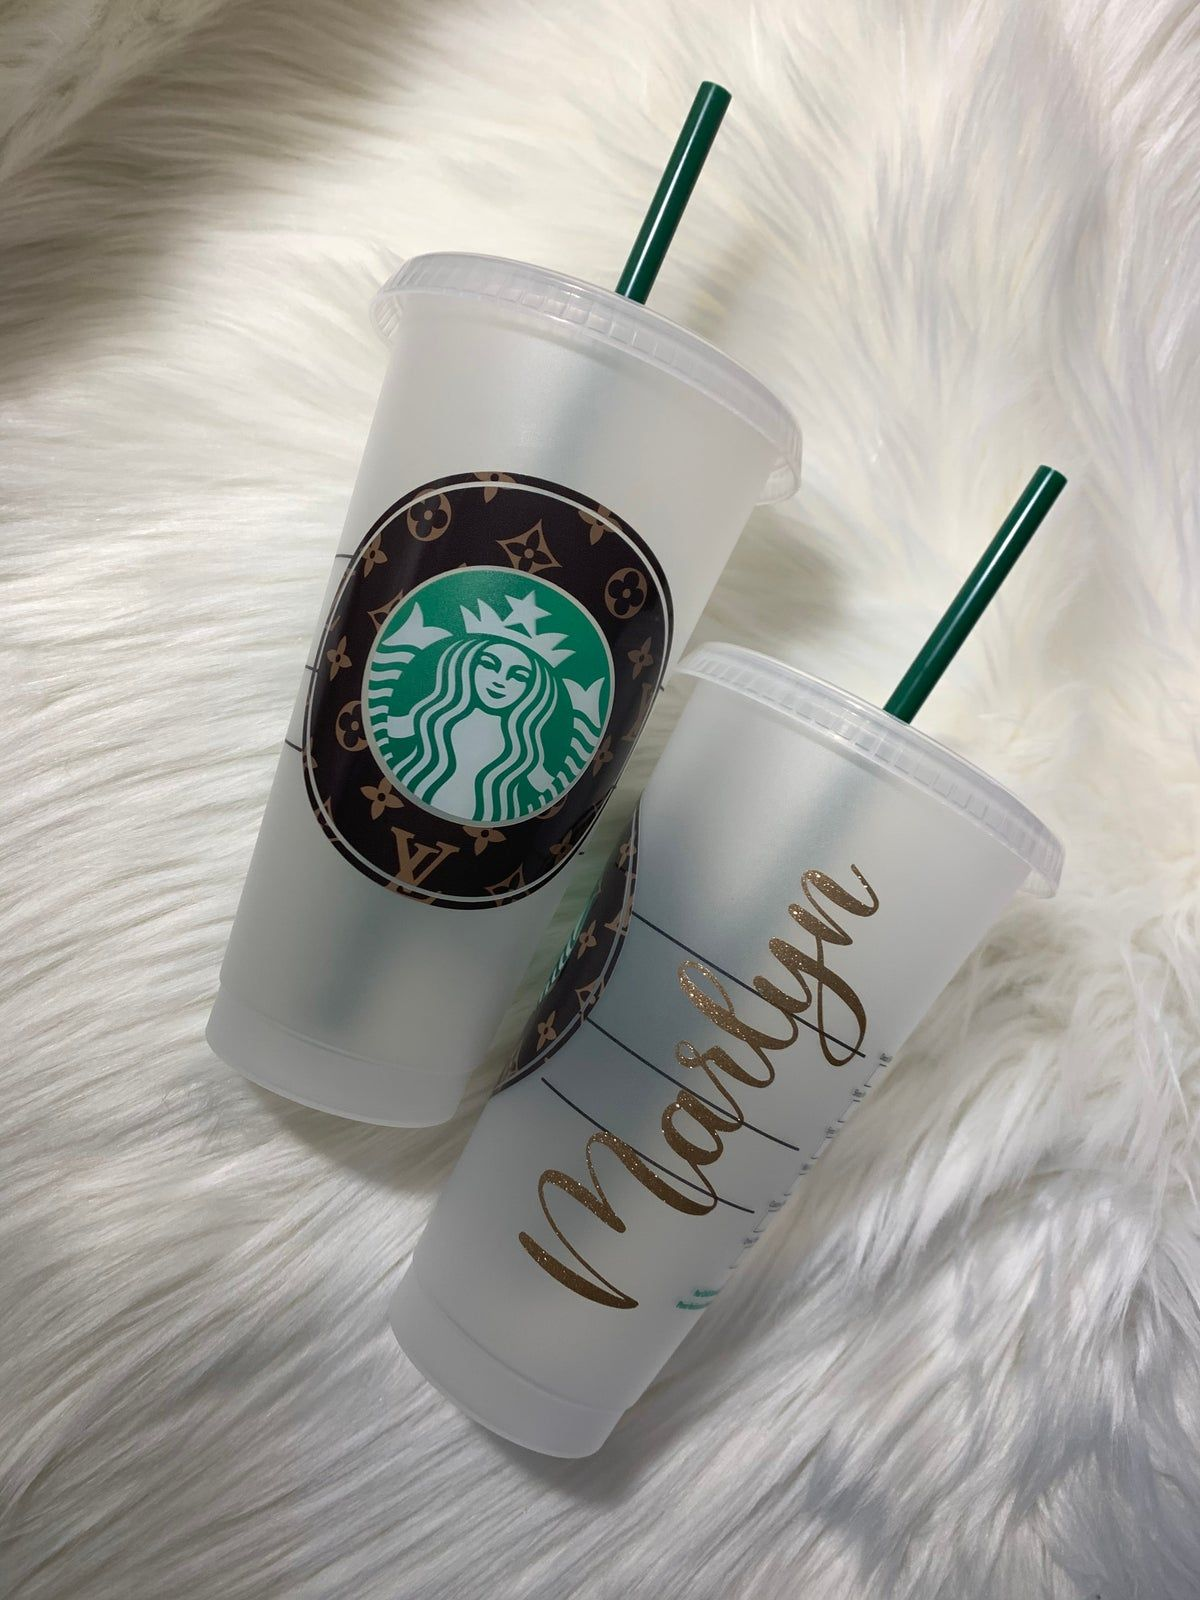 Lv Monogram Cold Cup In 2020 Custom Starbucks Cup Personalized Starbucks Cup Starbucks Cup Art